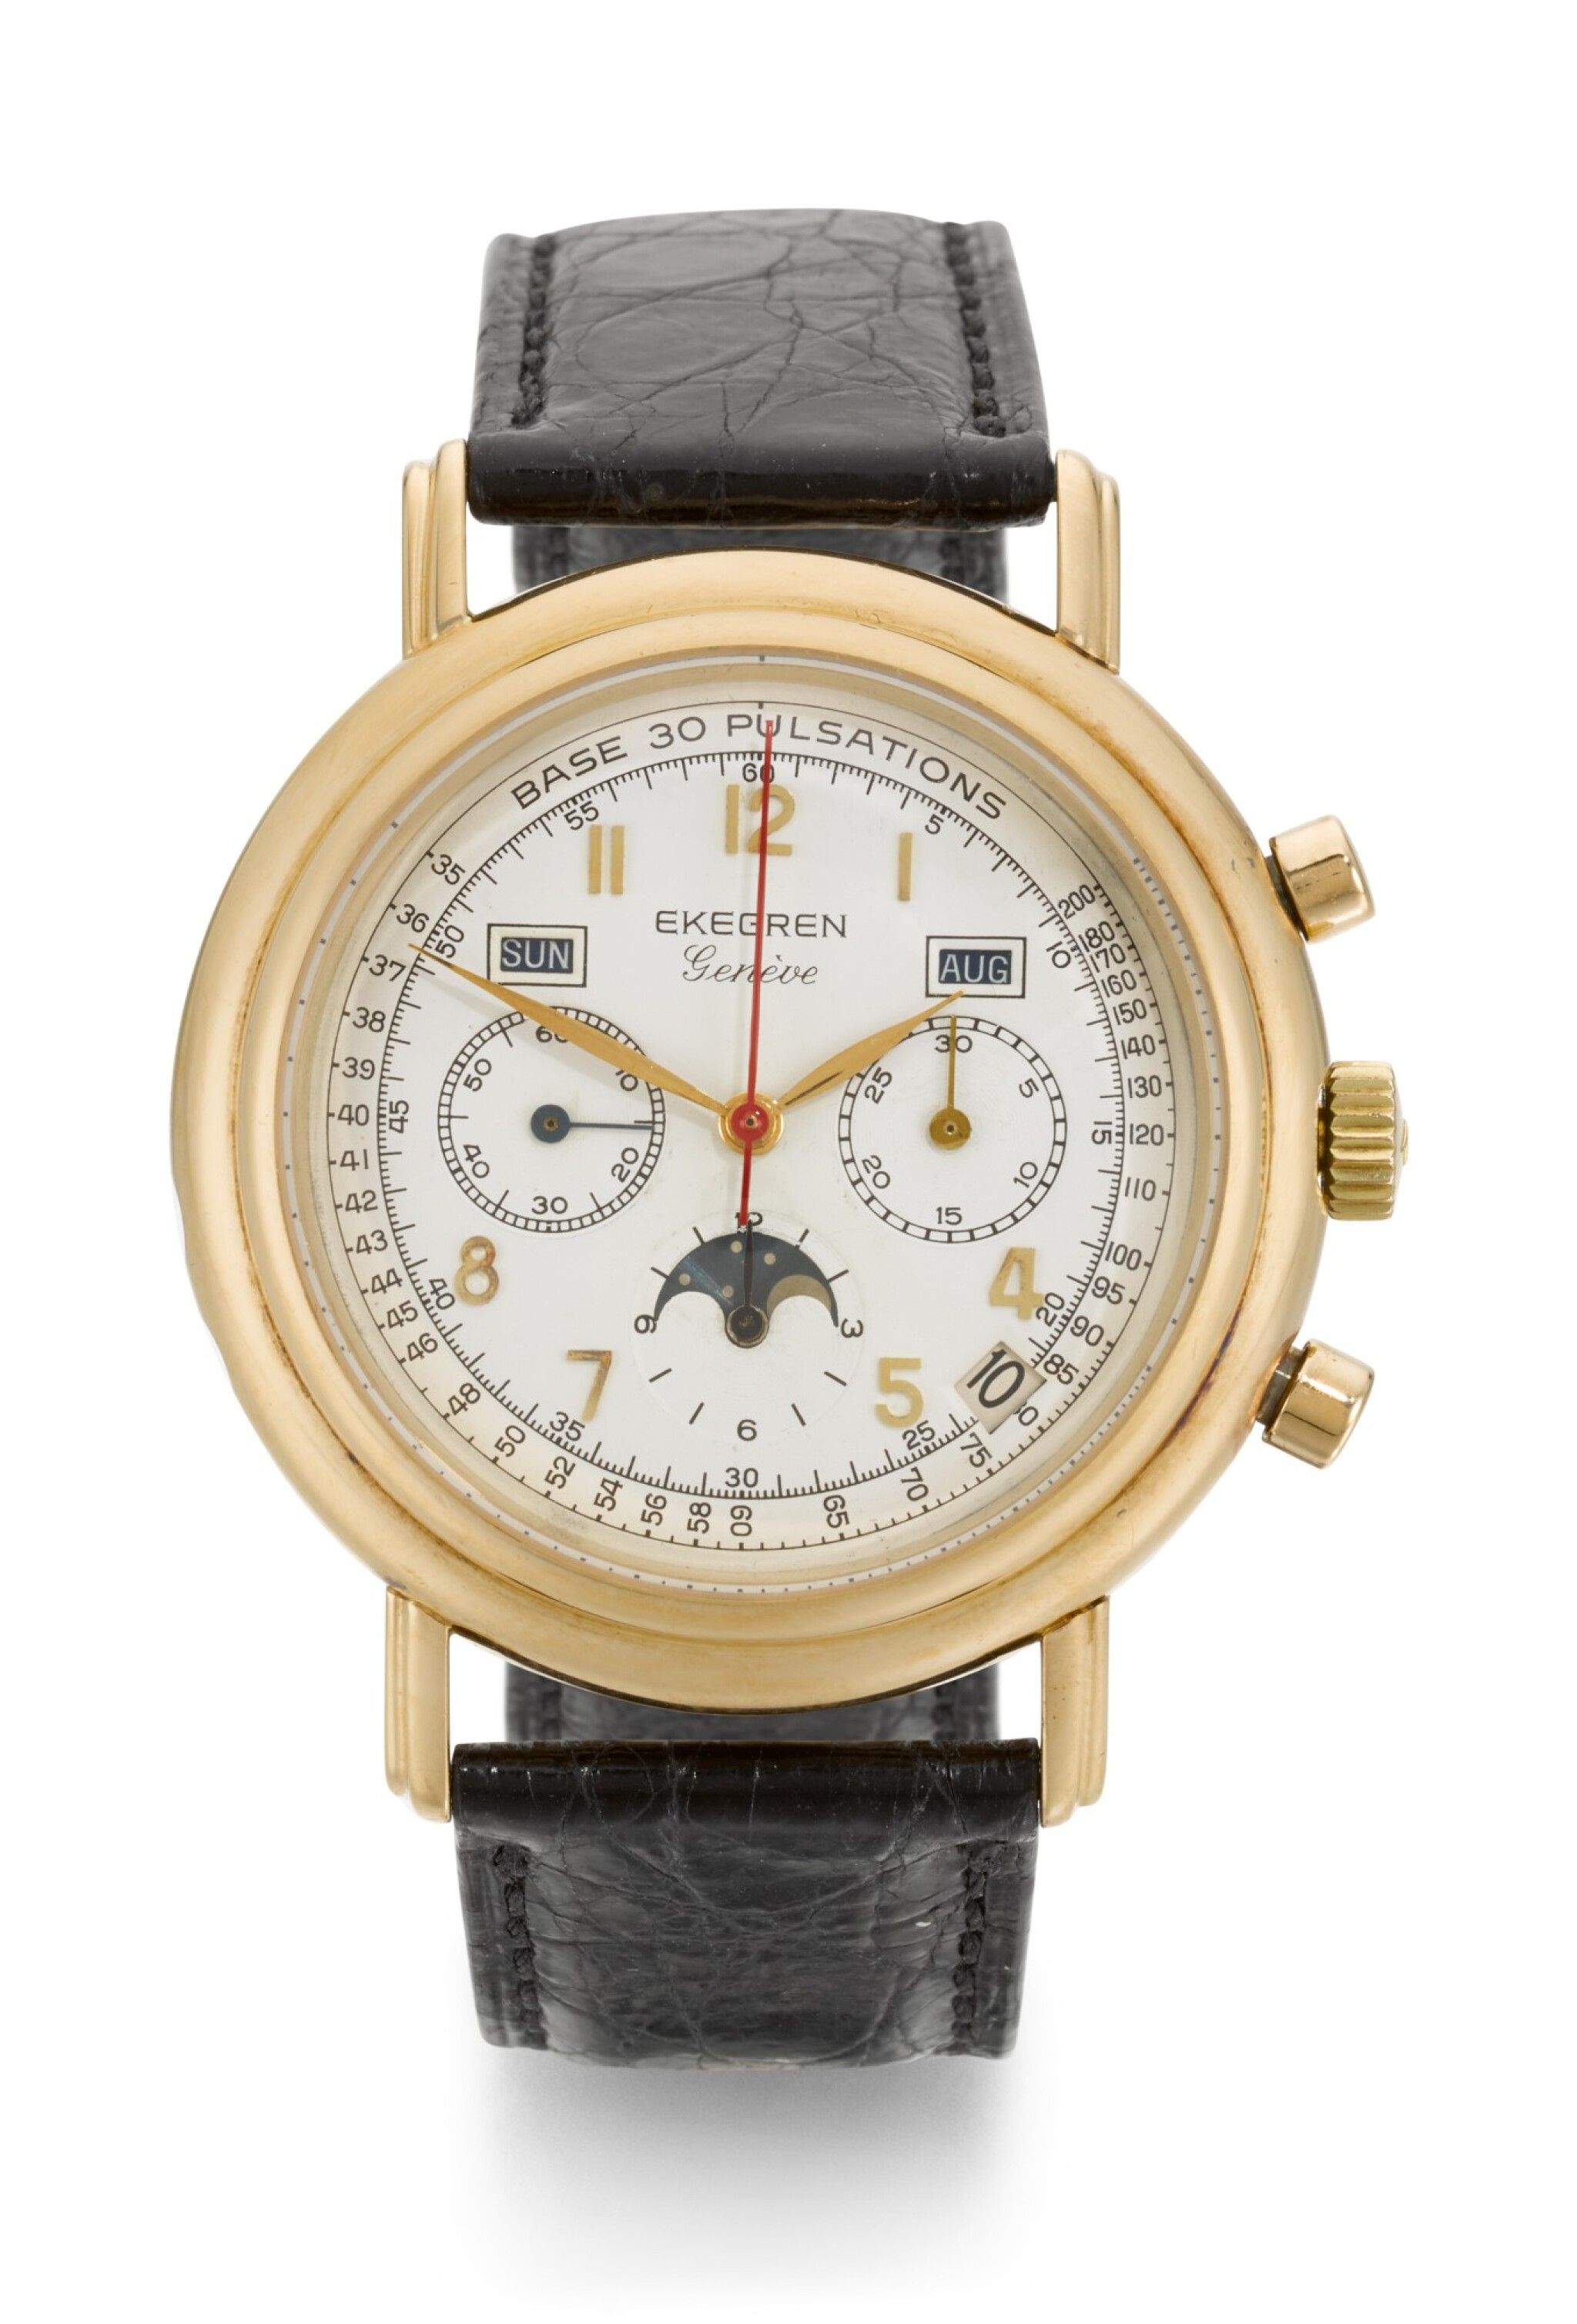 View full screen - View 1 of Lot 14. EKEGREN | YELLOW GOLD CHRONOGRAPH WRISTWATCH WITH DAY, DATE, MONTH AND MOON-PHASES, CIRCA 1990.